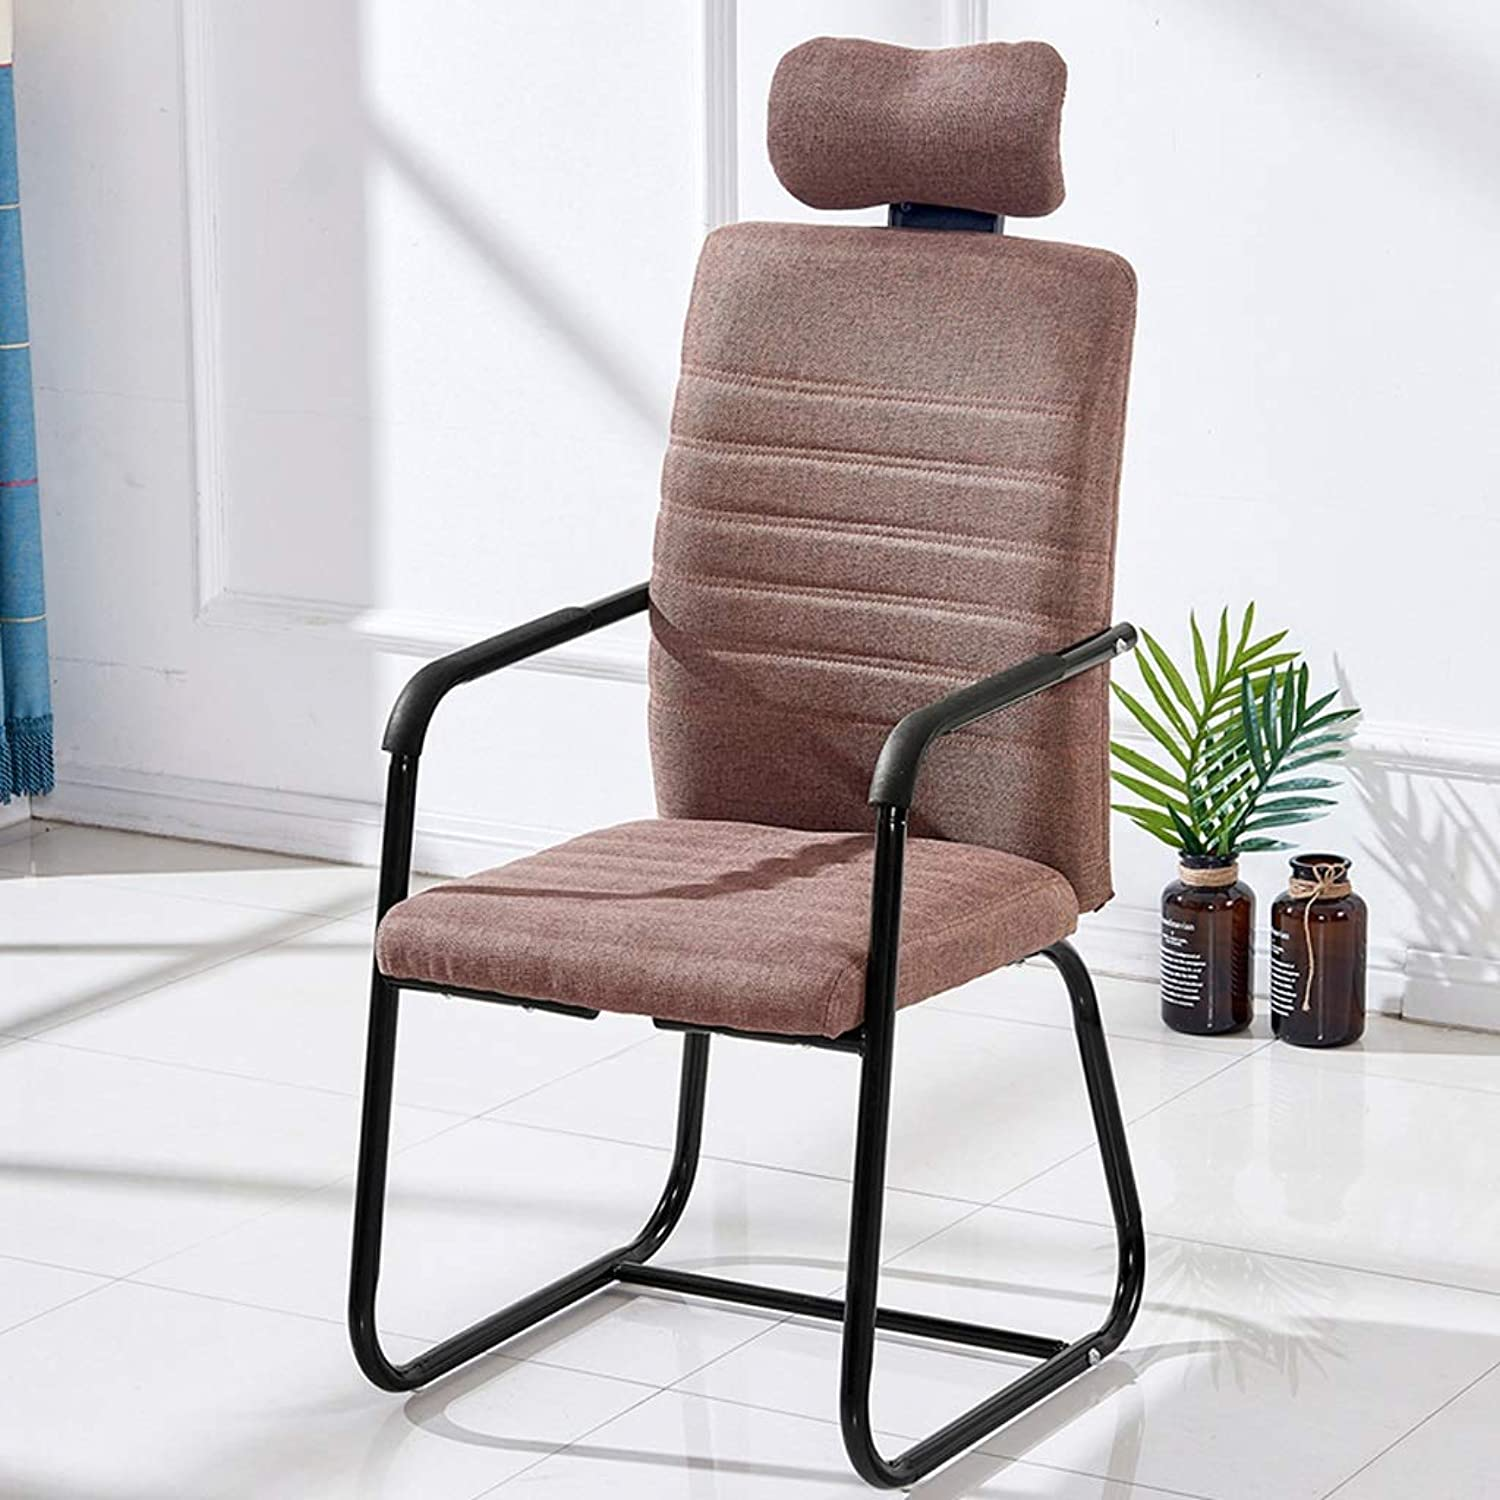 Lumbar Support for Office Chair Mesh Ergonomic Office Chair Staff Chair Headrest (color   Brown)